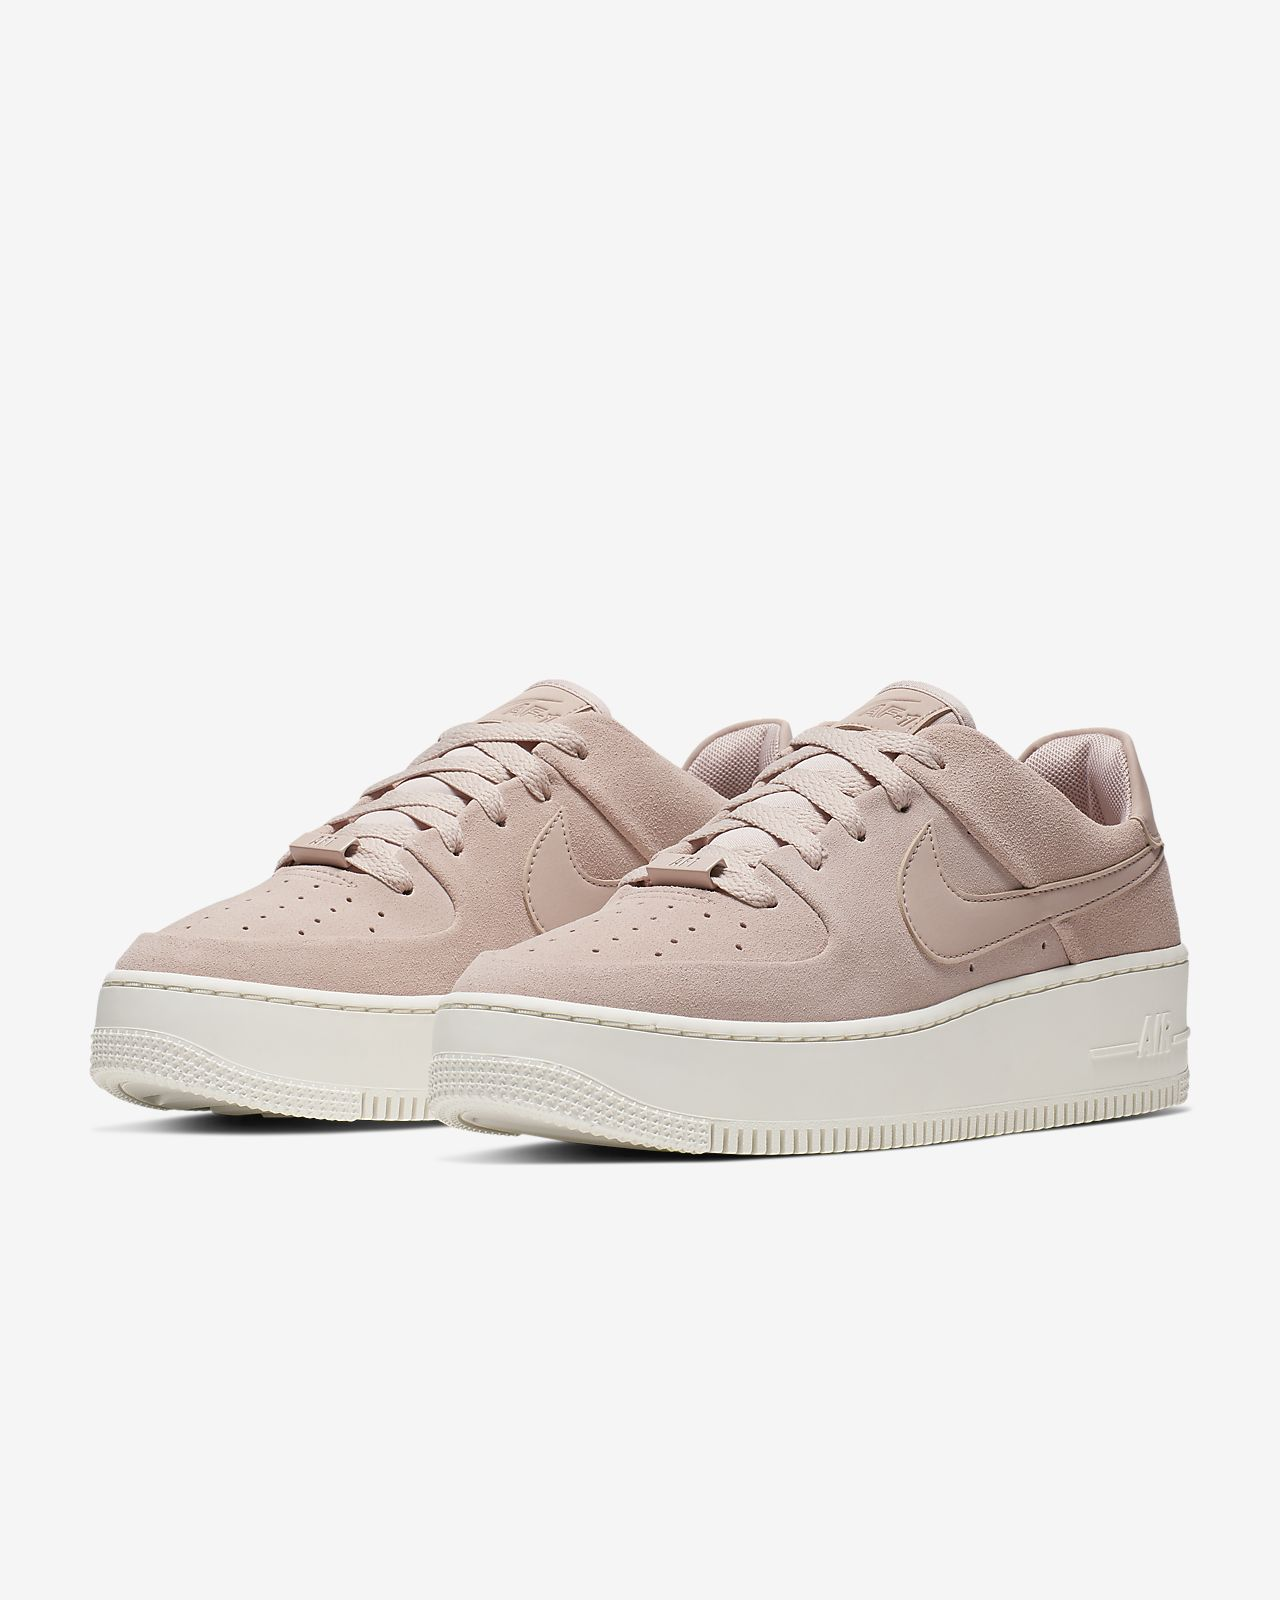 Femme Nike Chaussure Fr Sage Force 1 Low Air Pour 0qxavdxwp